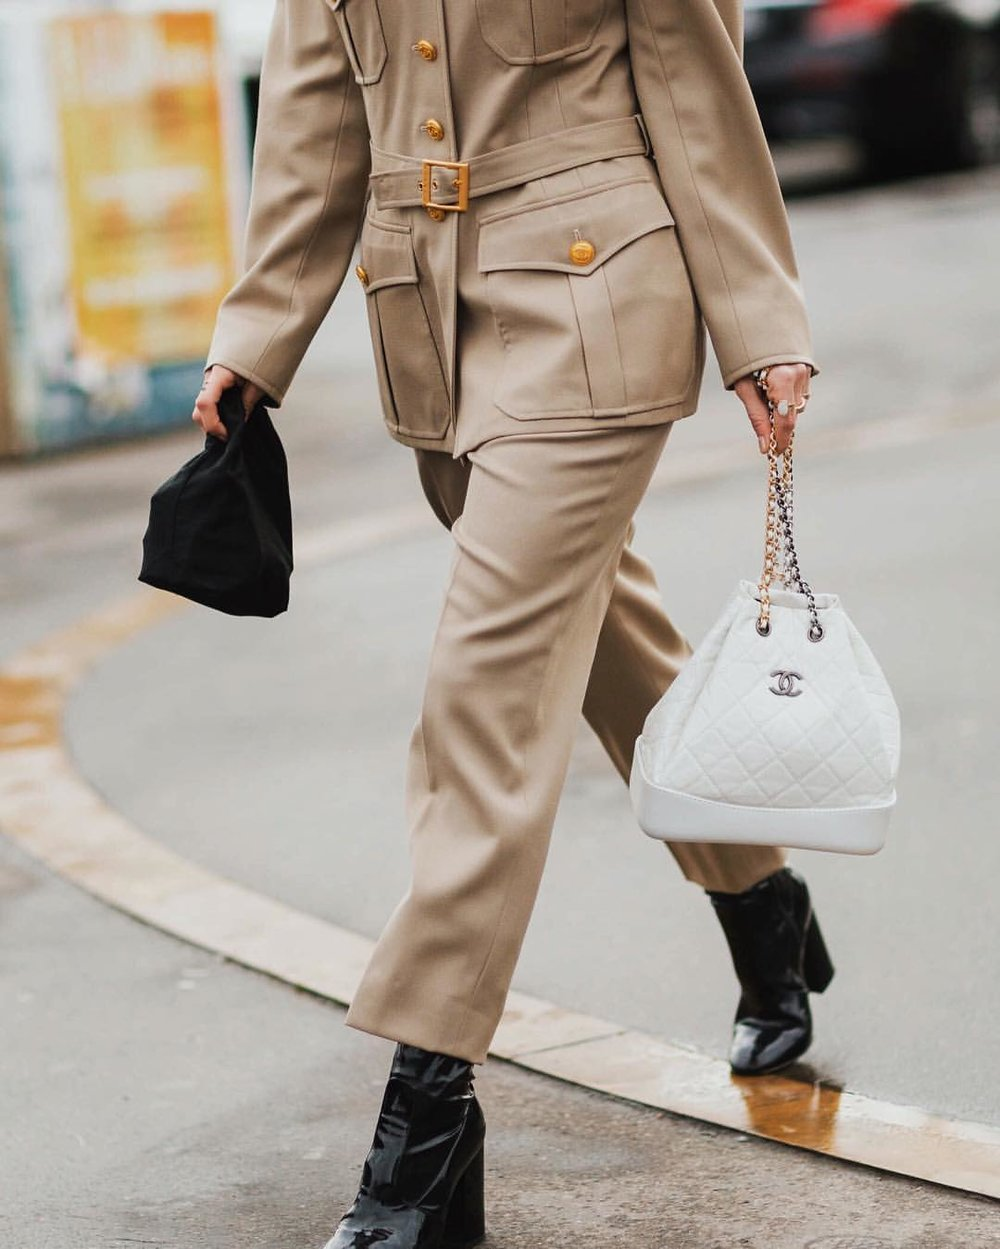 alwaysjudgingblog: Leaving @chanelofficial wearing a vintage Chanel suit via @eraluxe and the new Gabrielle backpack 🎒 #Chanel